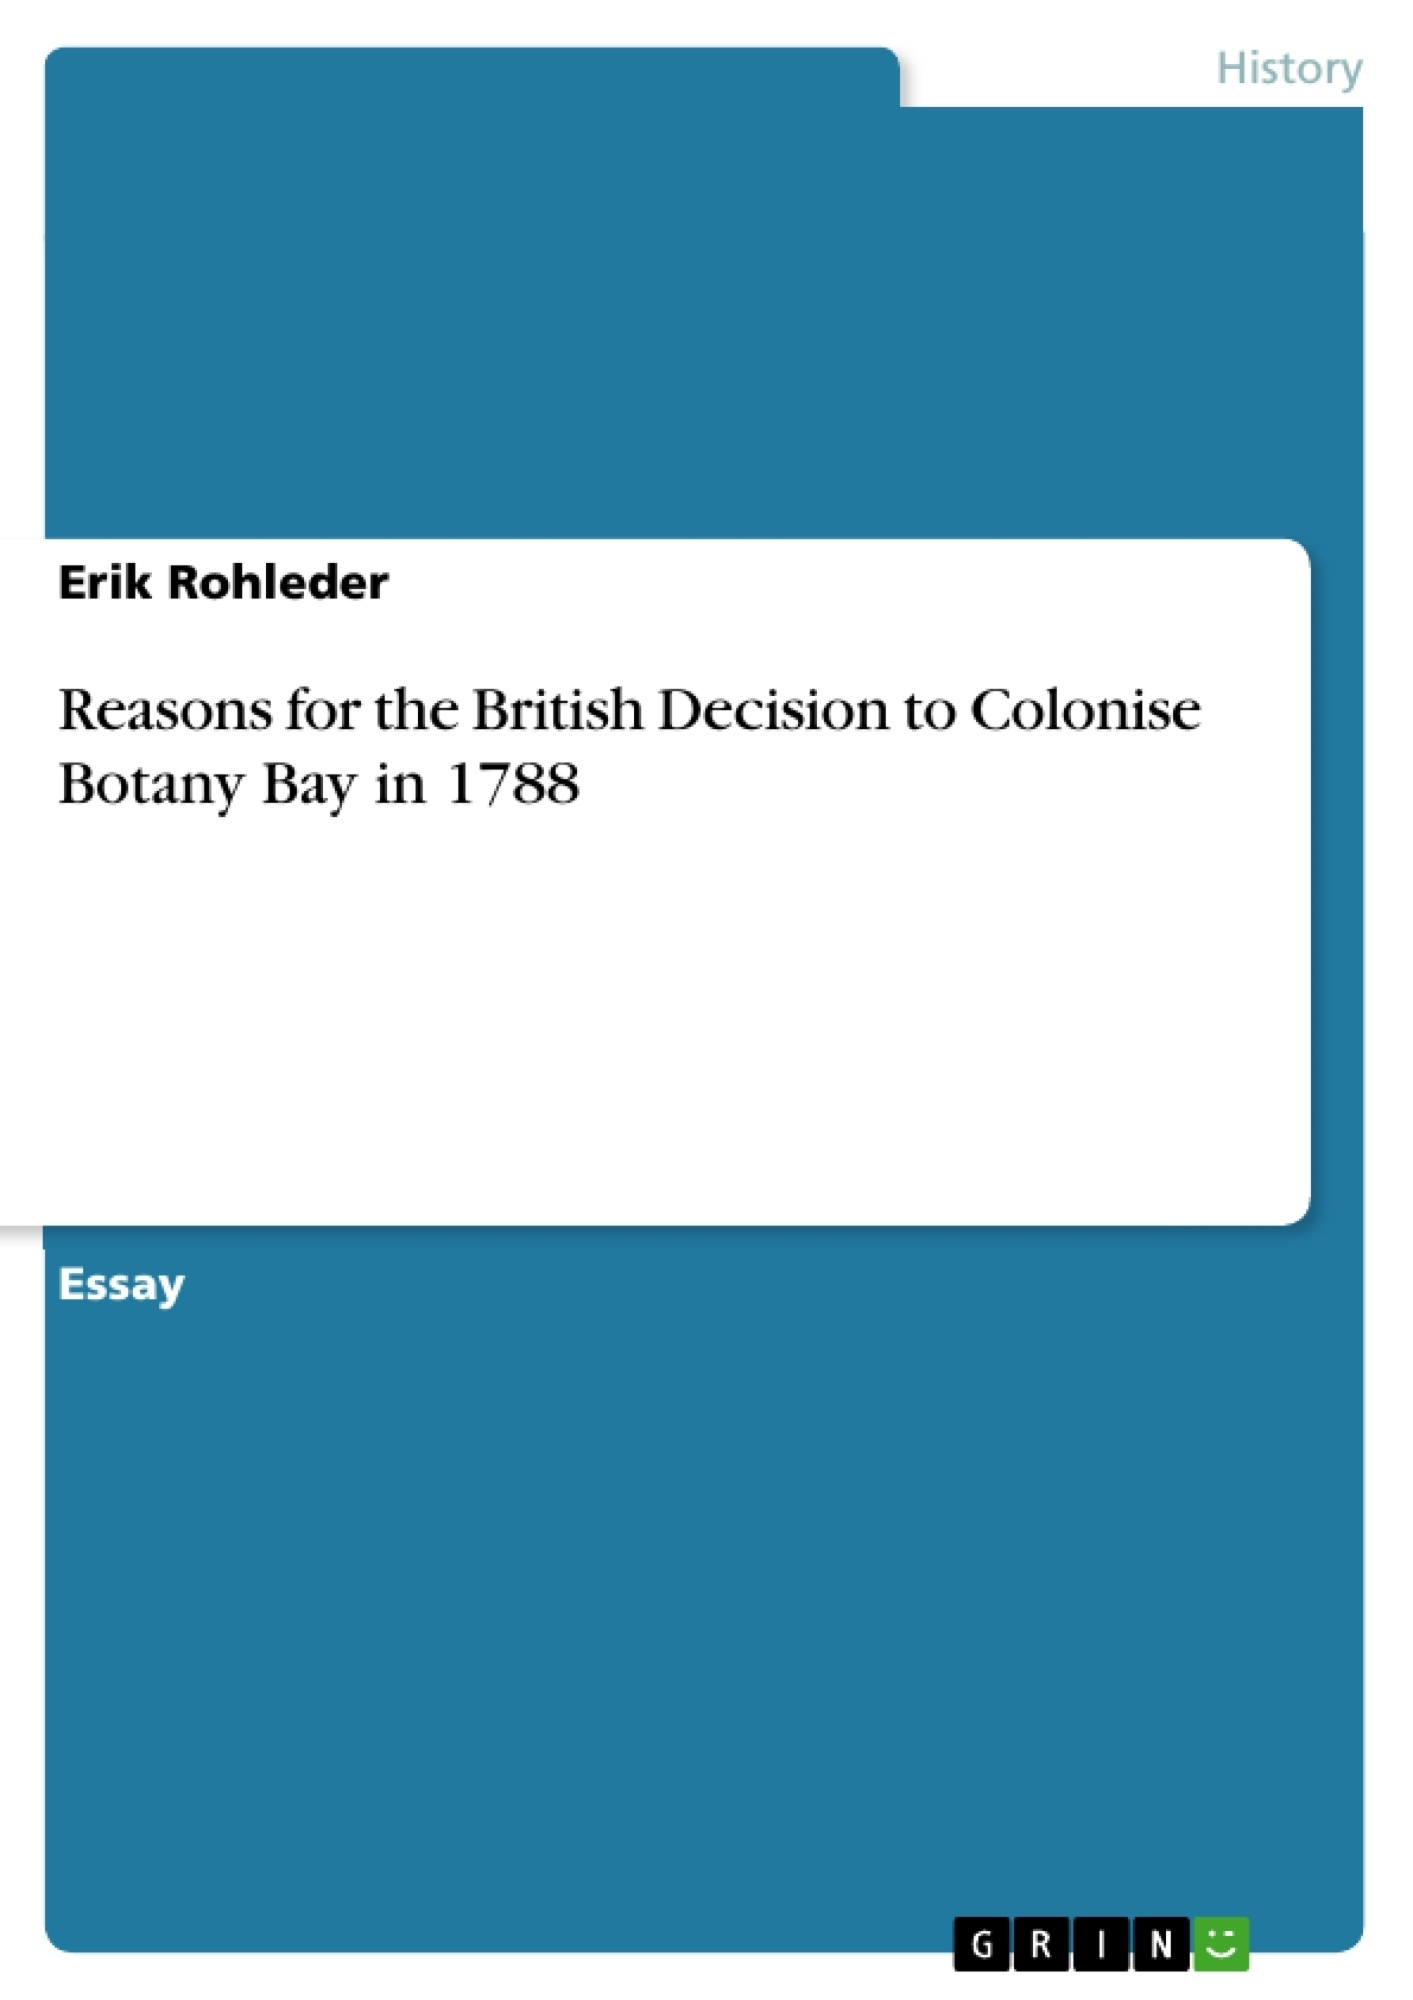 Title: Reasons for the British Decision to Colonise Botany Bay in 1788